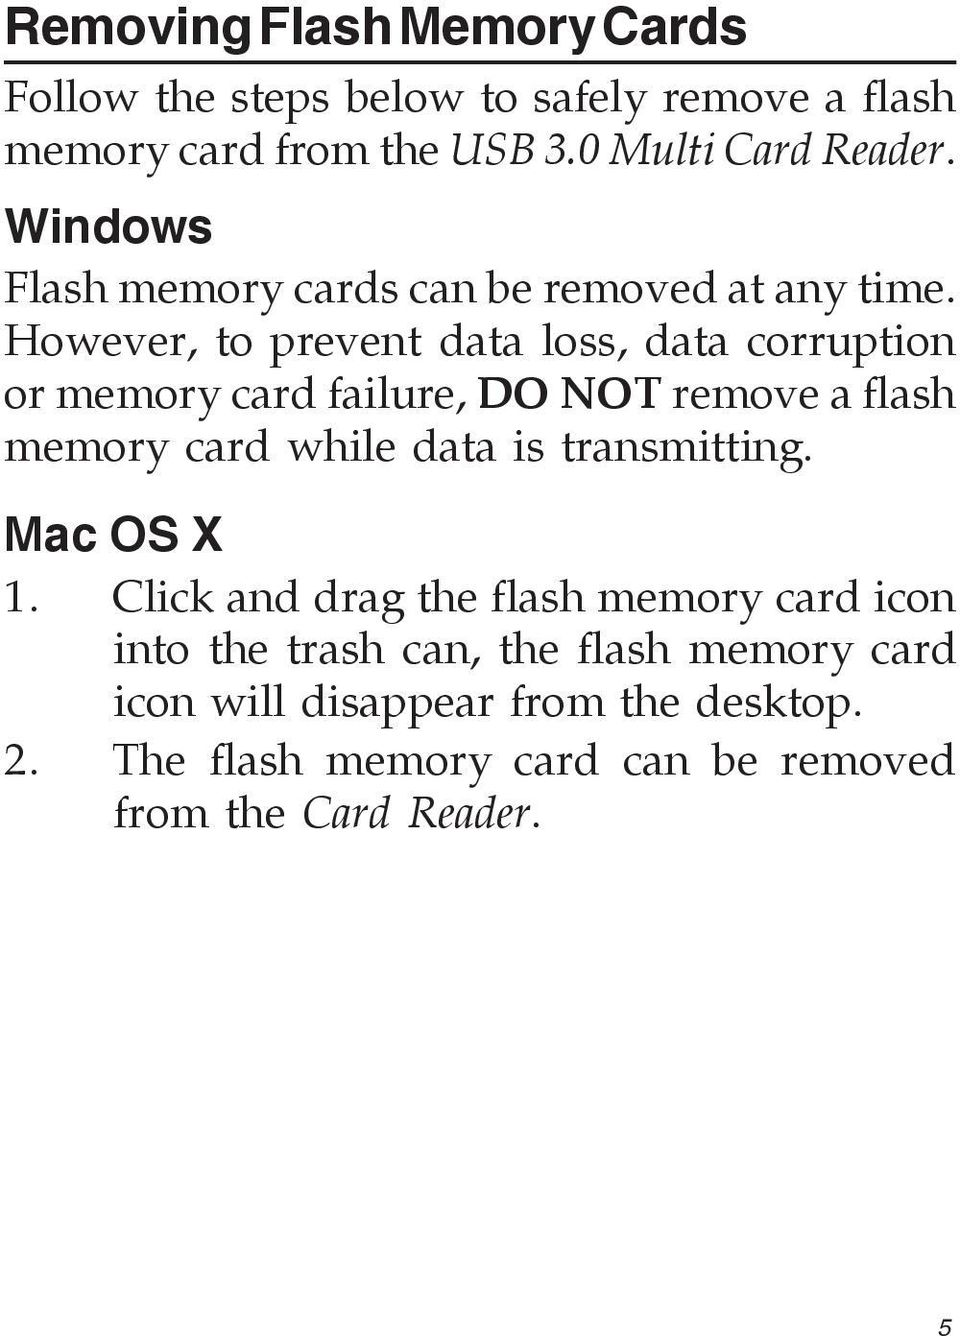 However, to prevent data loss, data corruption or memory card failure, DO NOT remove a flash memory card while data is